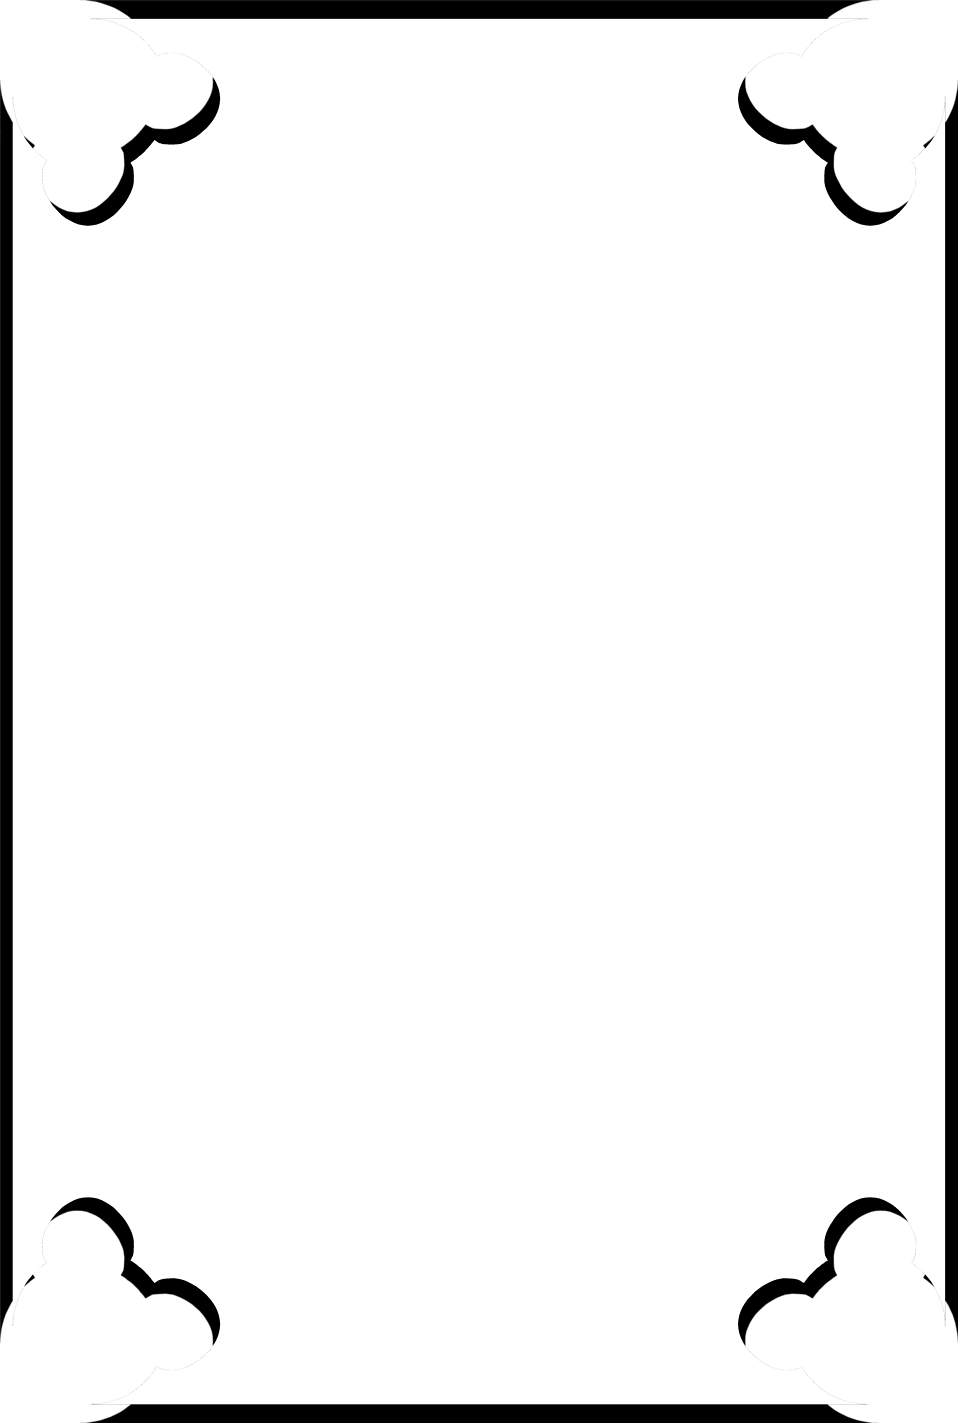 Illustration of a blank frame border with cut out corners : Free Stock Photo